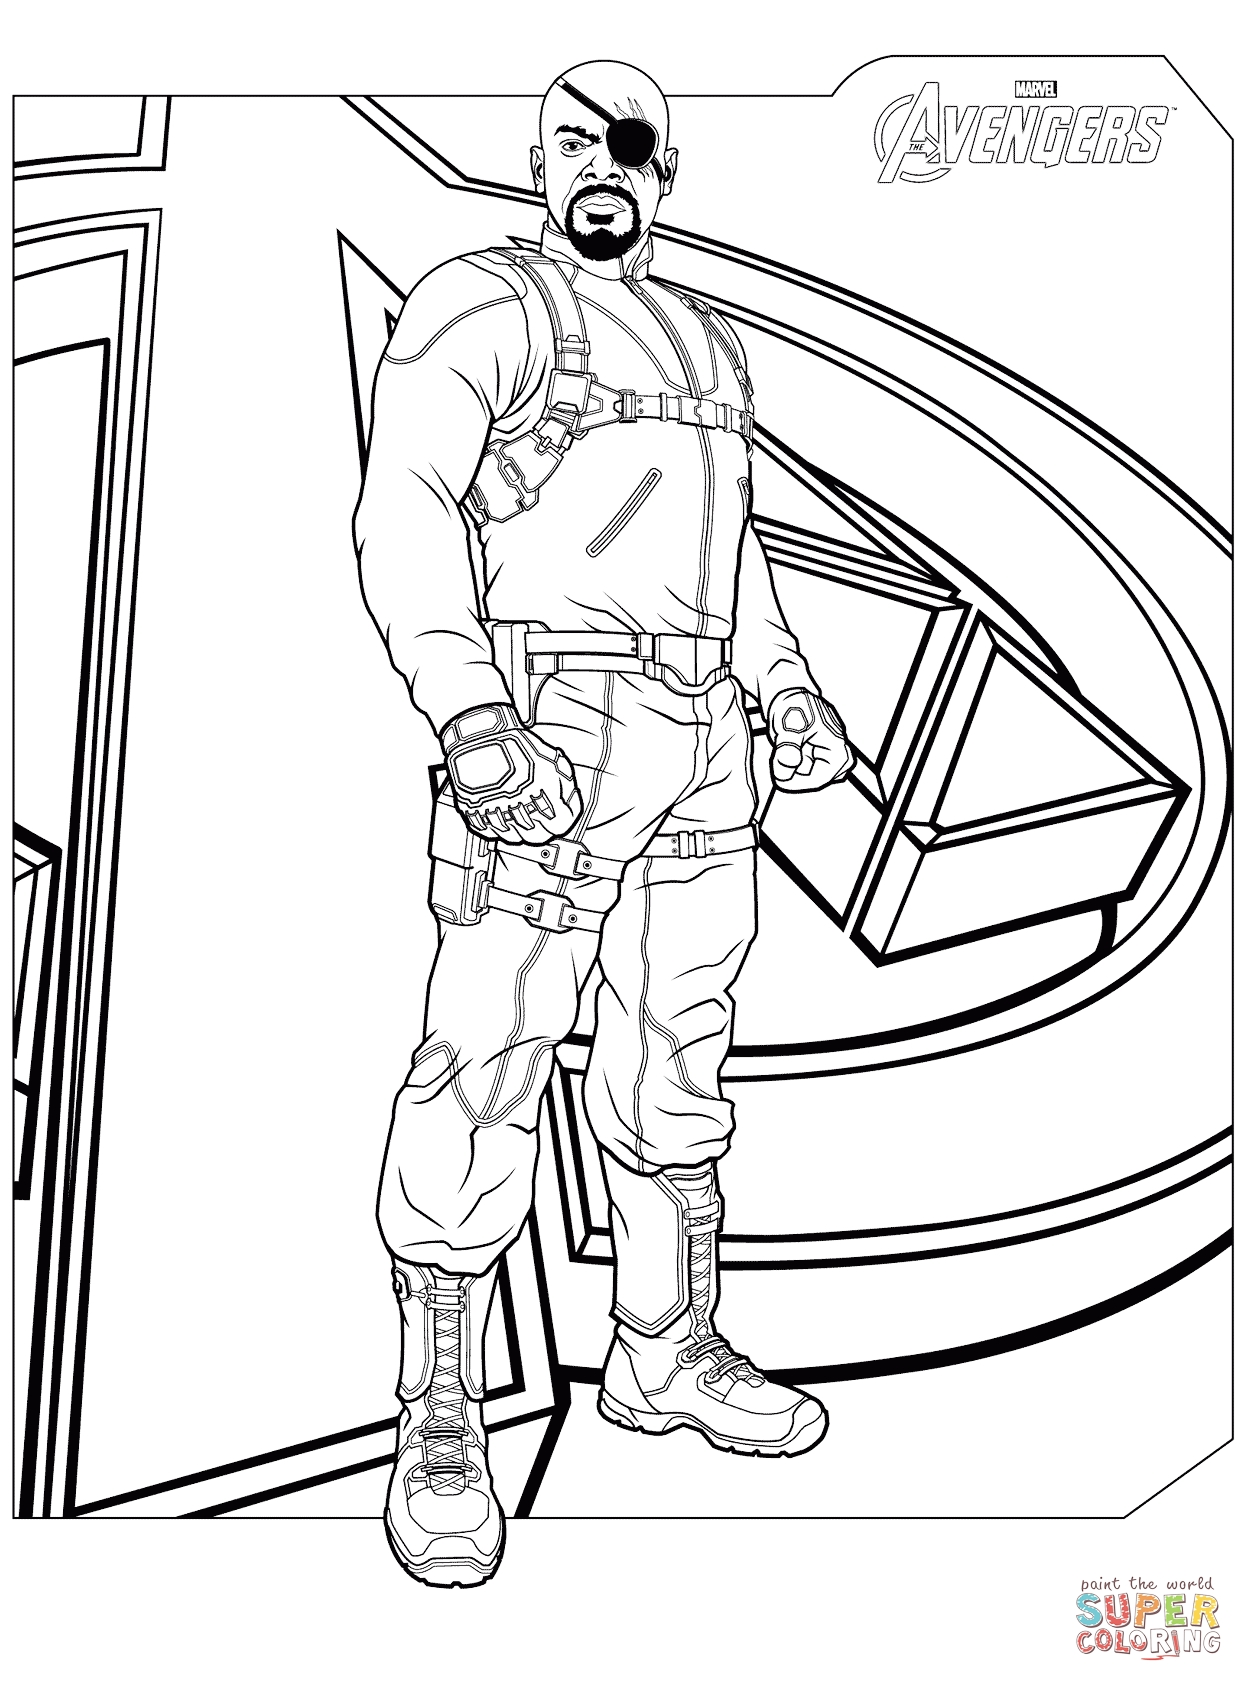 avengers coloring pages - avengers nick fury